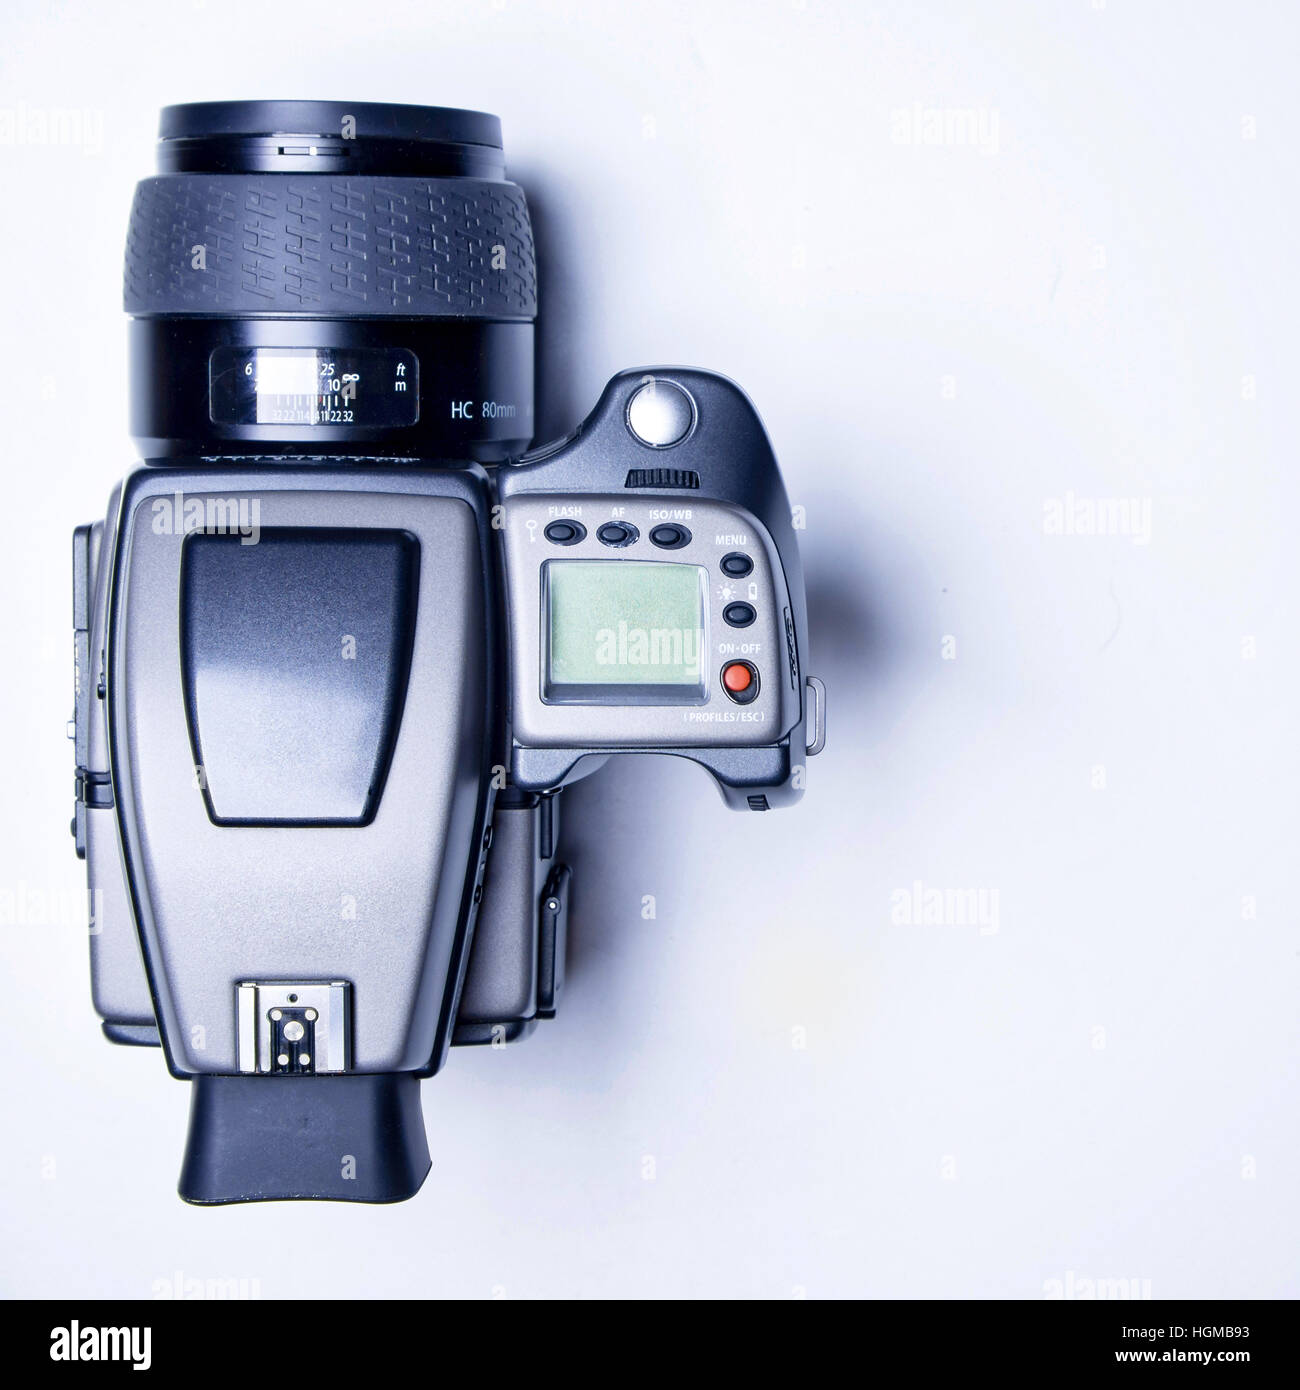 Top view of a hasselblad H4d-40 medium format camera - Stock Image